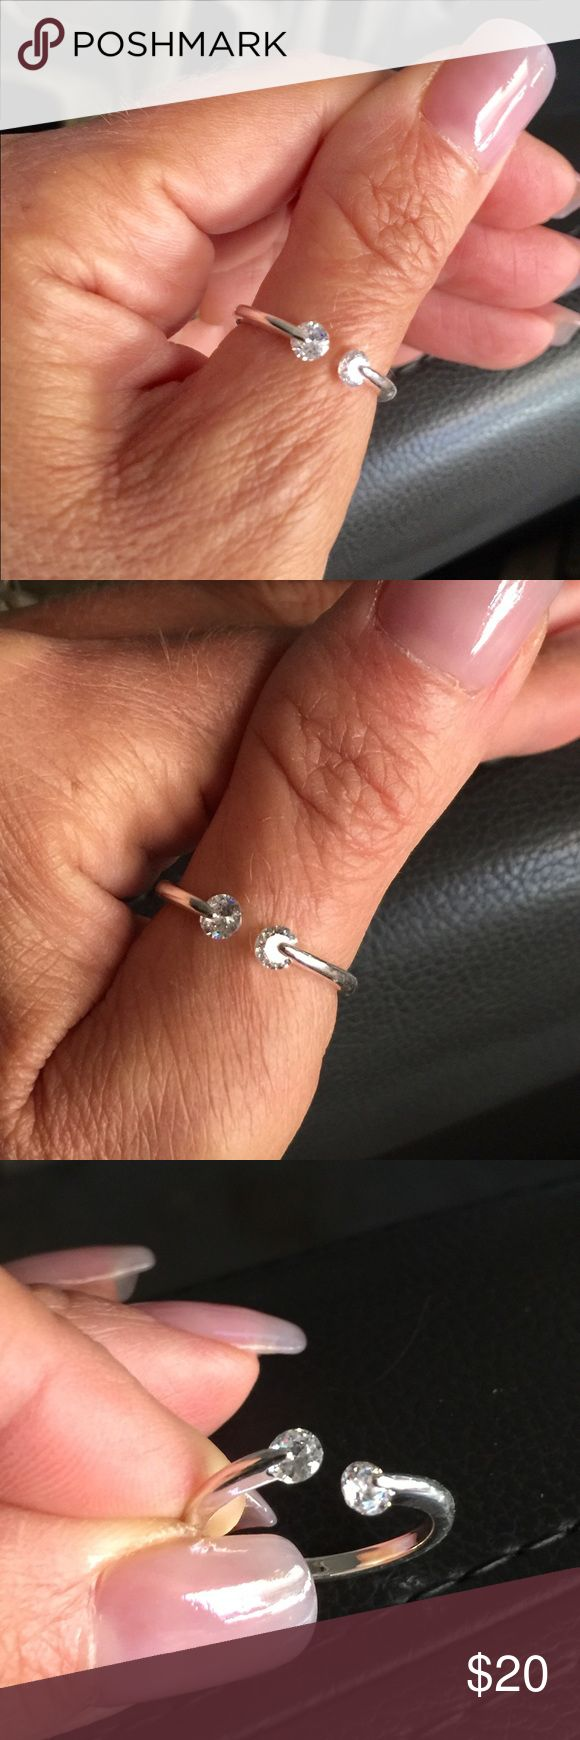 CZ Silver Plated Finger/Thumb Ring  CZ Silver Plated Finger/Thumb Ring Adjustable to fit approximately size 6 to 9. Jewelry Rings